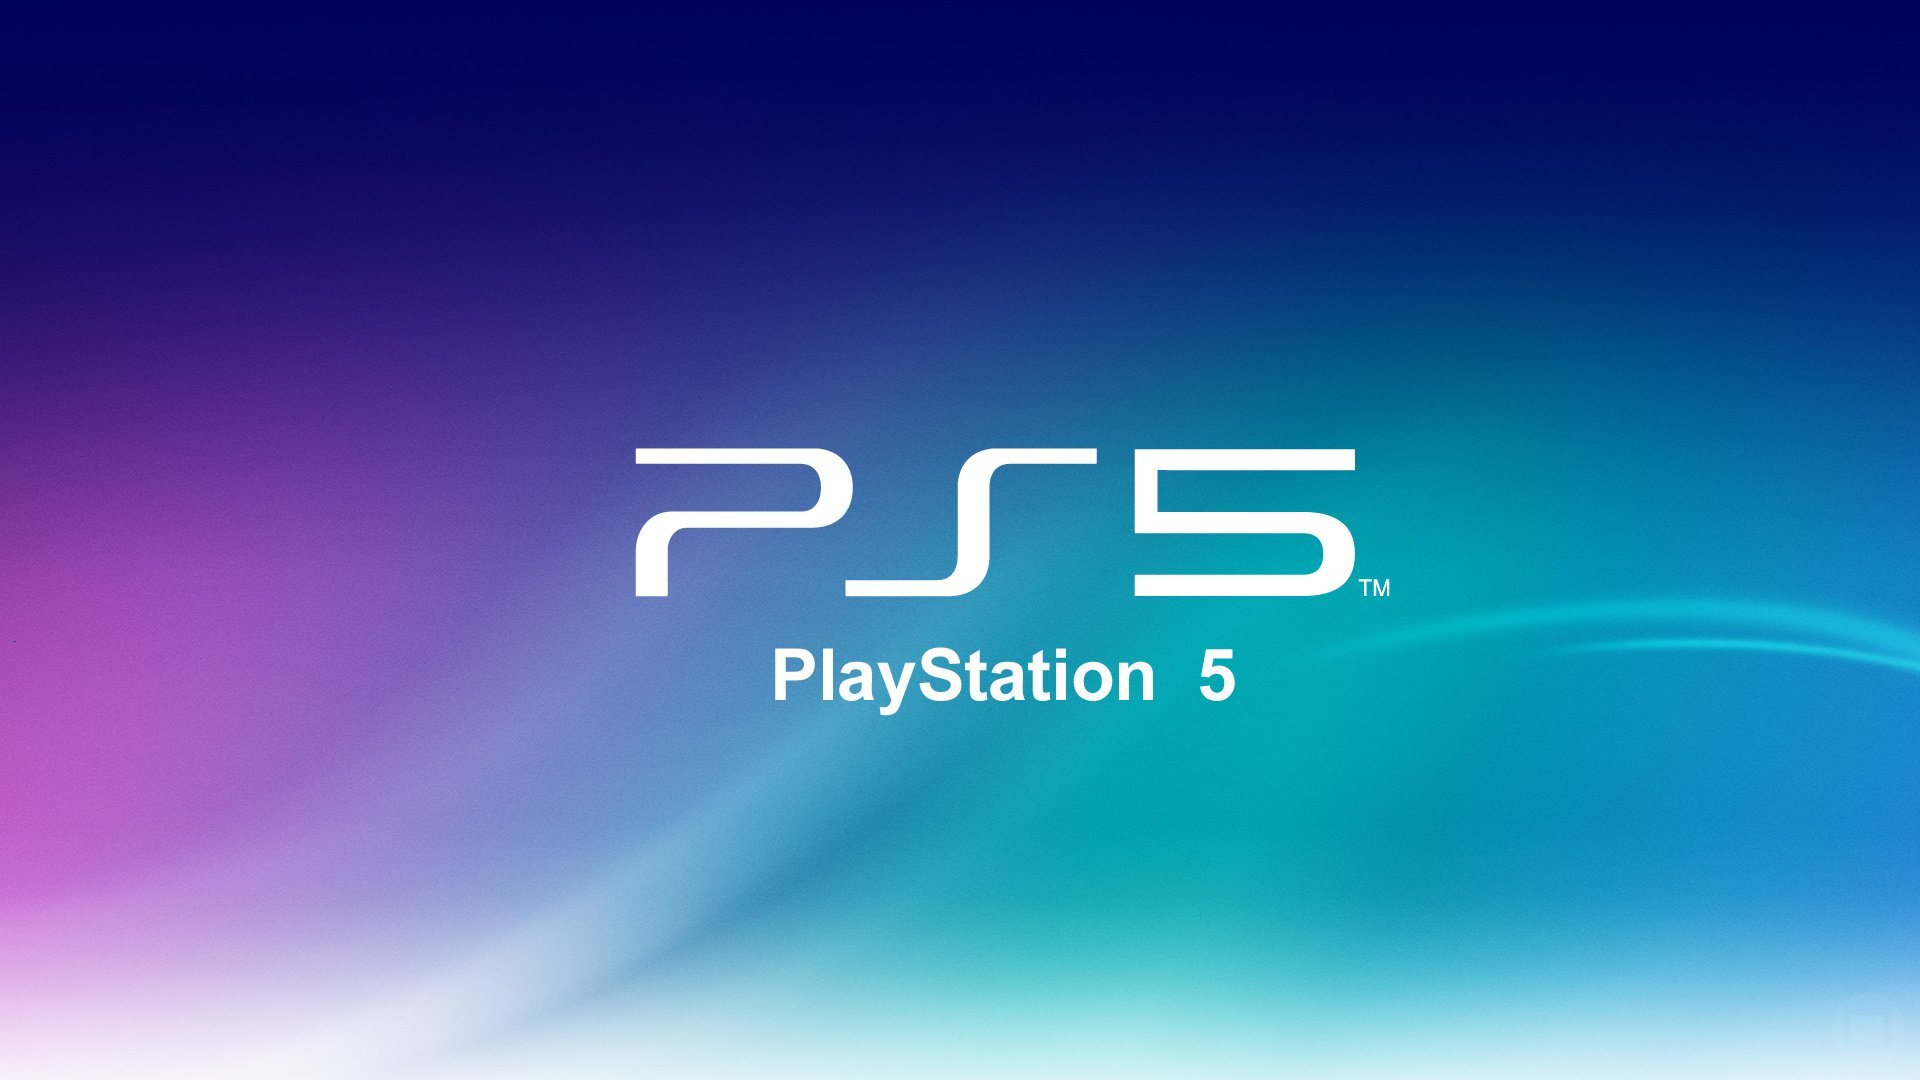 PS5 price has not been affected by COVID-19 complications, Sony says